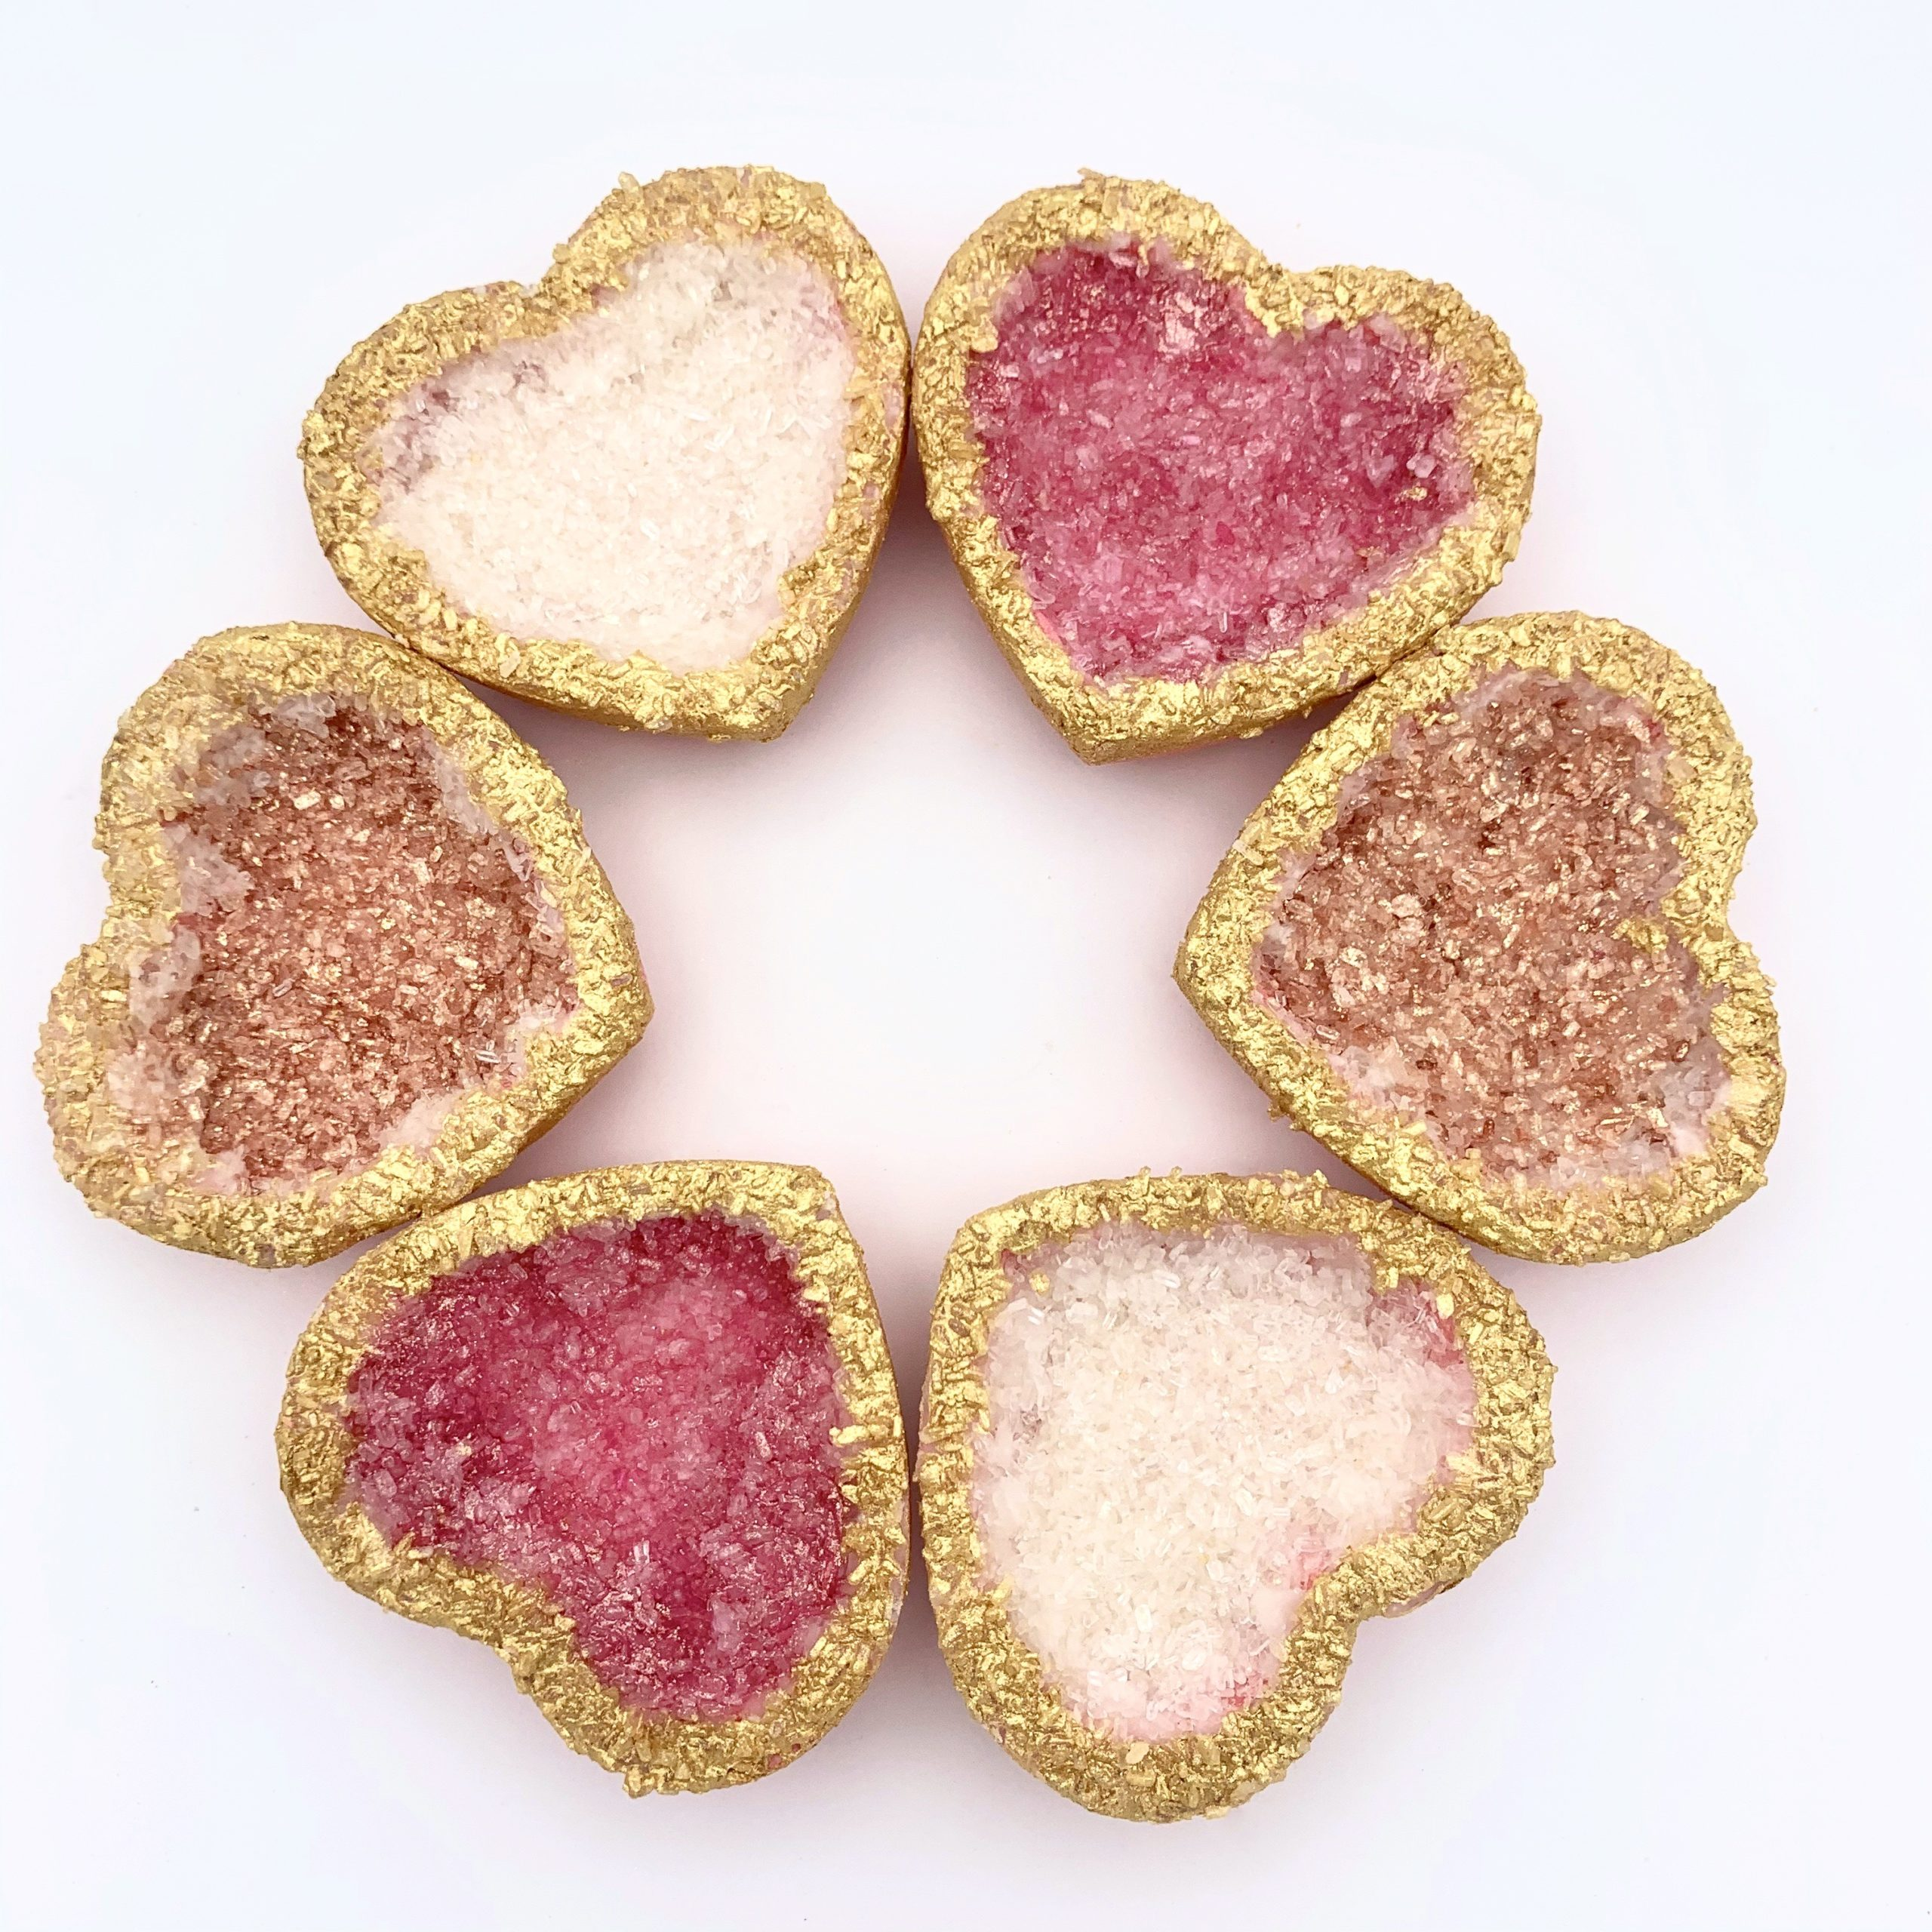 Geode Heart Bath Bombs by Robyn